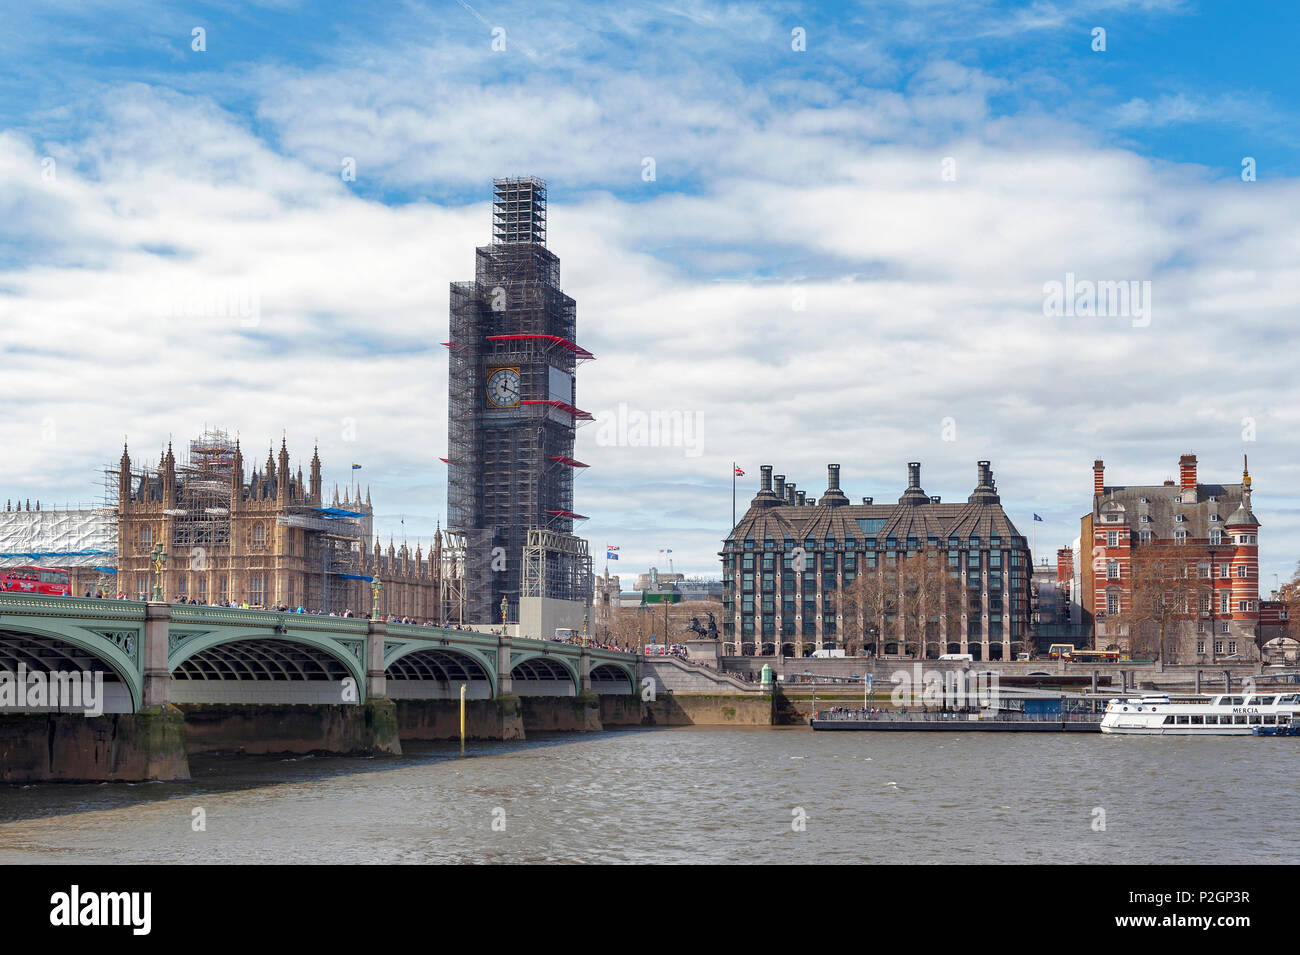 The Elizabeth Tower, known as Big Ben, iconic landmark of London, and the Palace of Westminster being scaffolded during the significant renovation Stock Photo